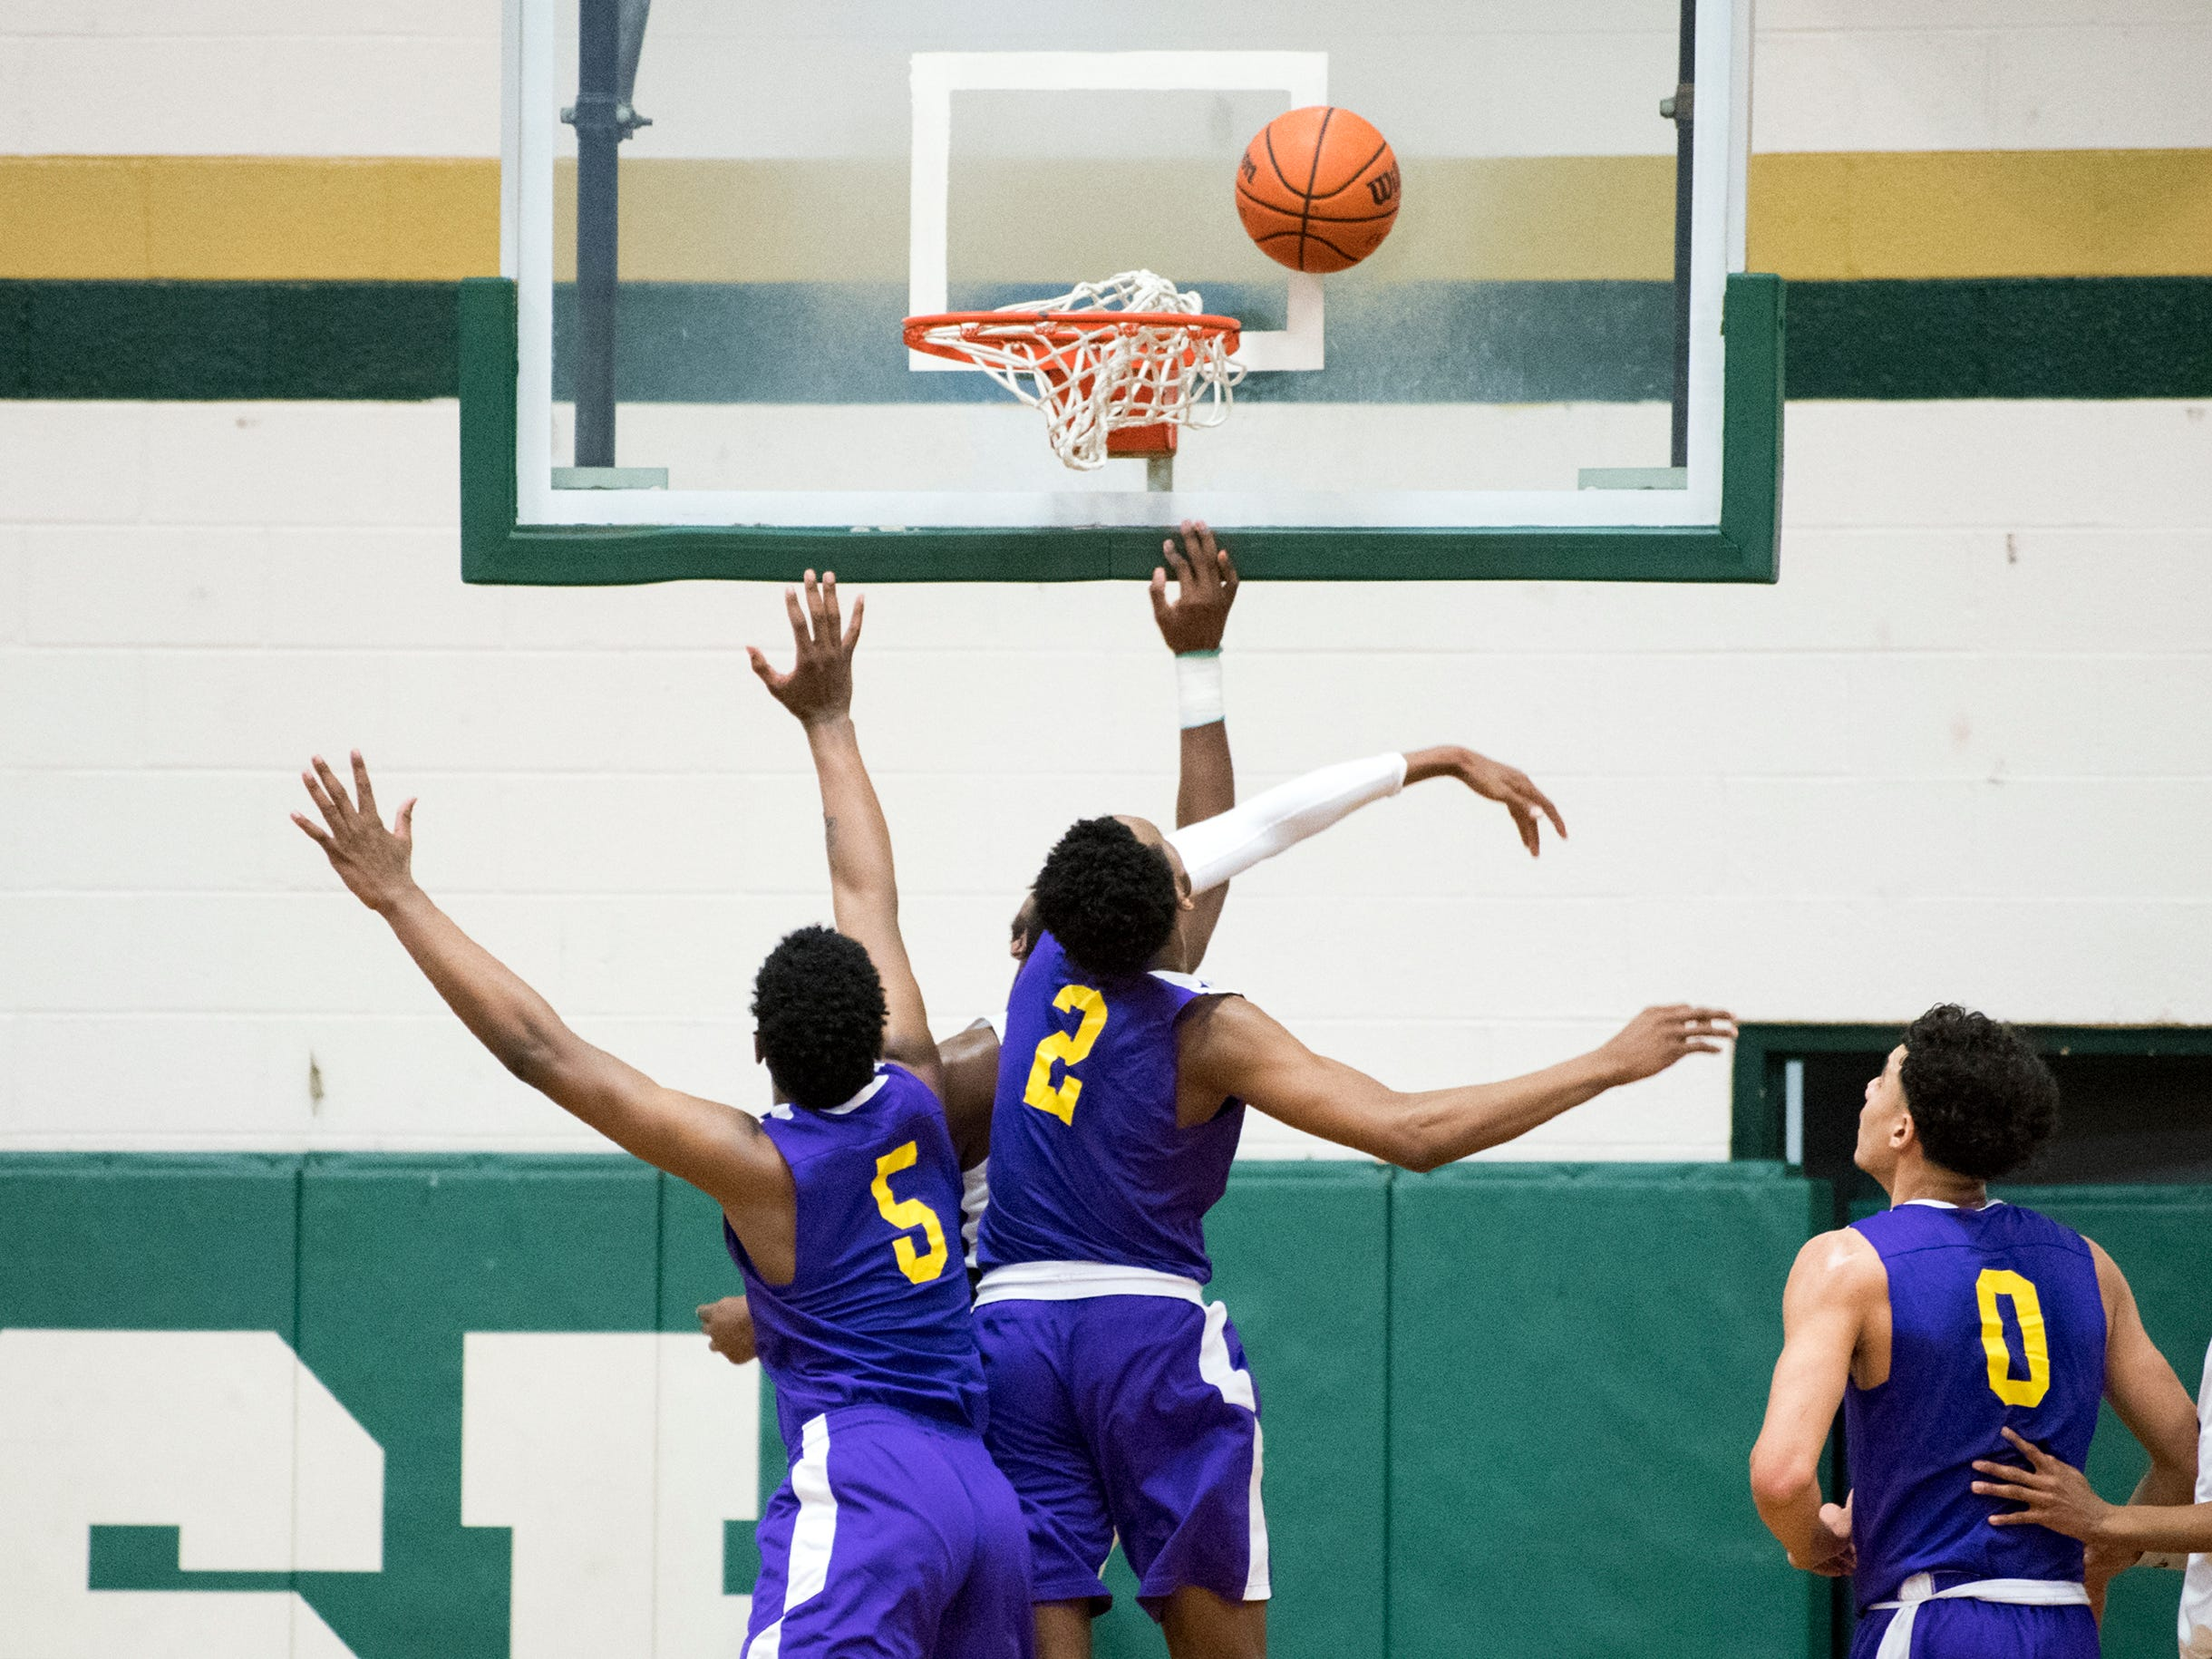 Camden's Taquon Woodley (5) and Jerome Brewer (2) attempt to block a shot from Camden Catholic Thursday, Feb. 21, 2019 at Camden Catholic High School in Cherry Hill, N.J. Camden Catholic won 57-54.